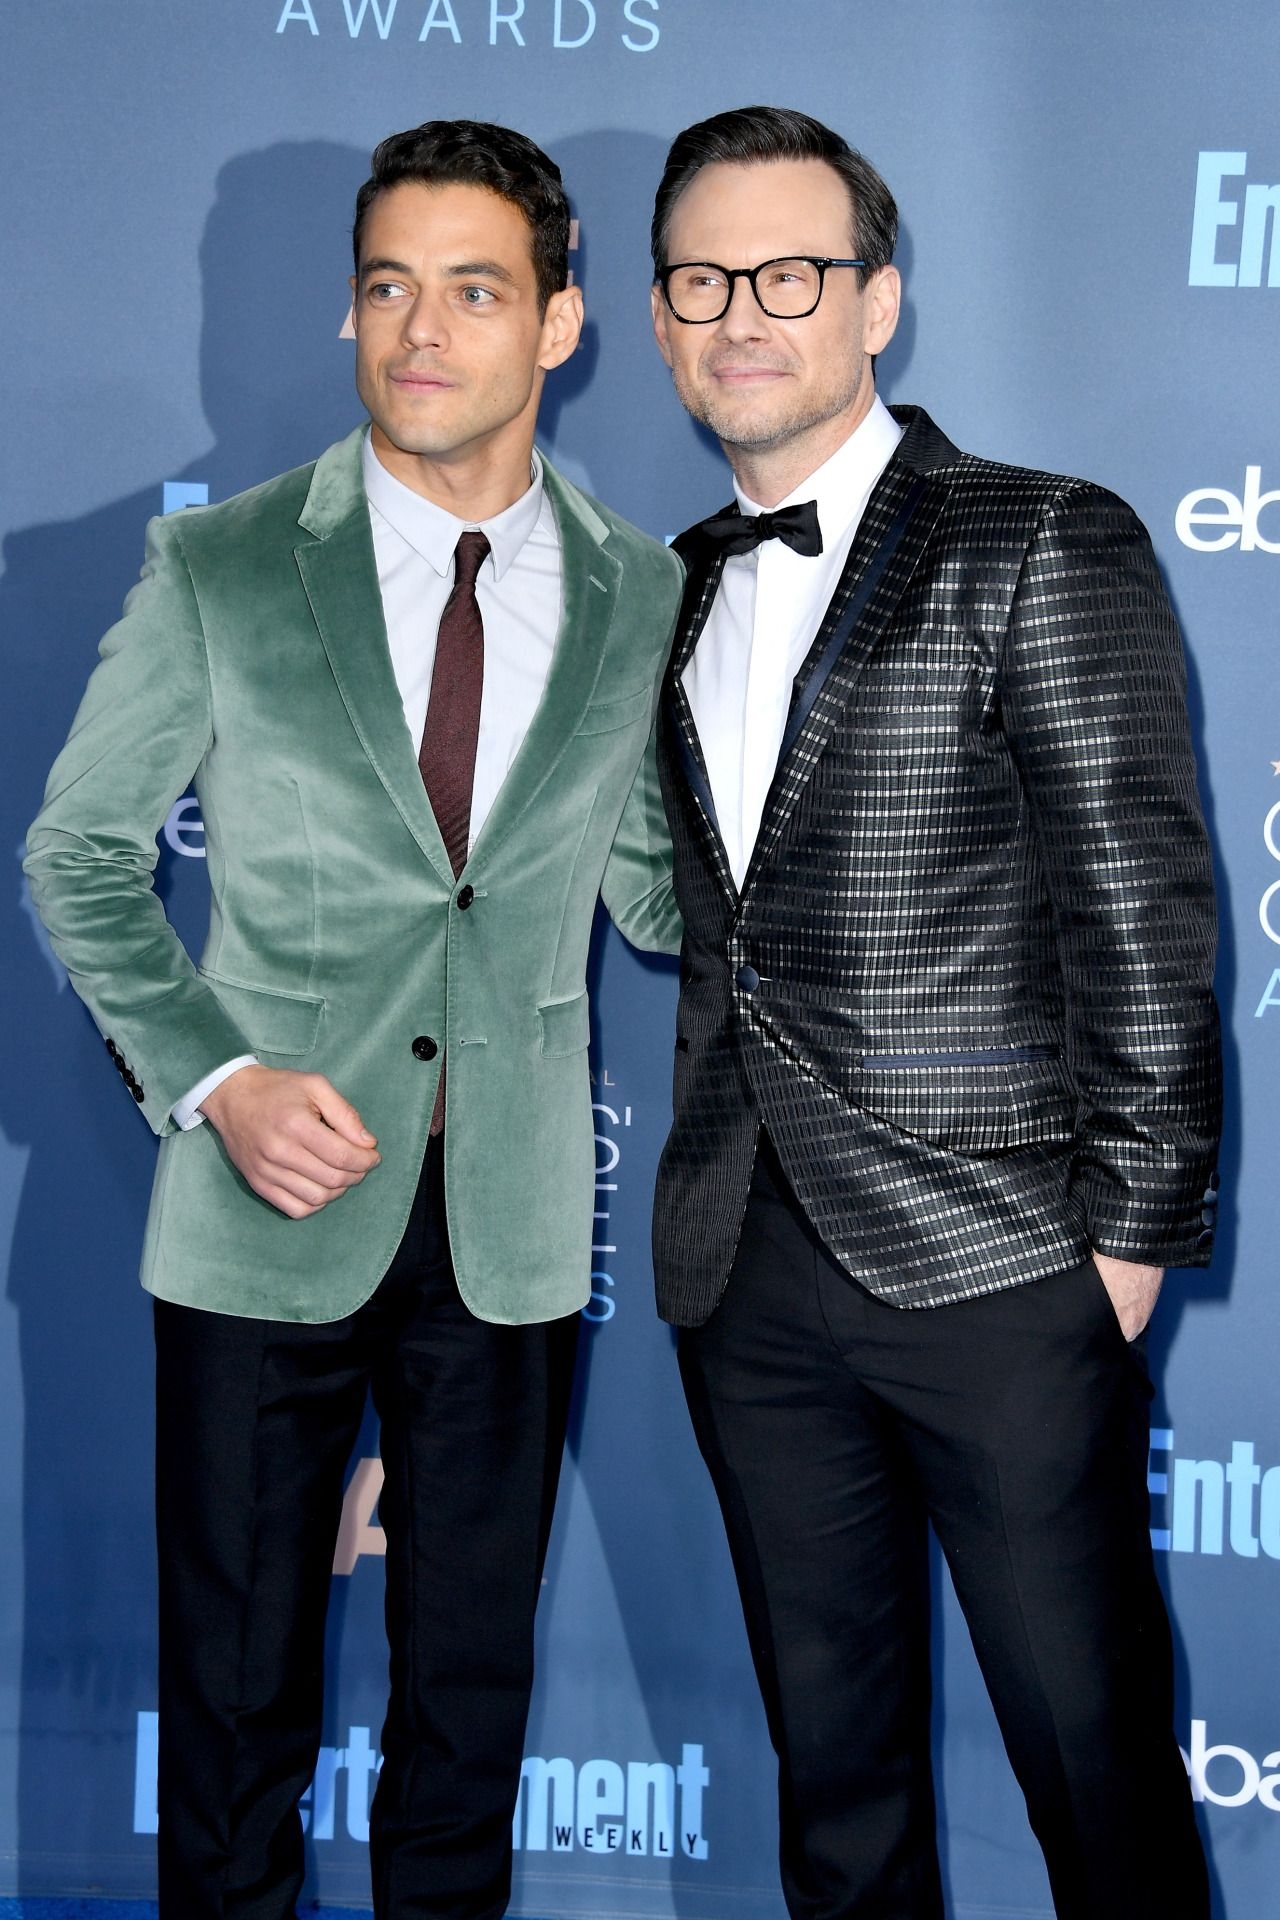 Rami Malek and Christian Slater attend The 22nd Annual Critics' Choice Awards at Barker Hangar on December 11, 2016 in Santa Monica, California.